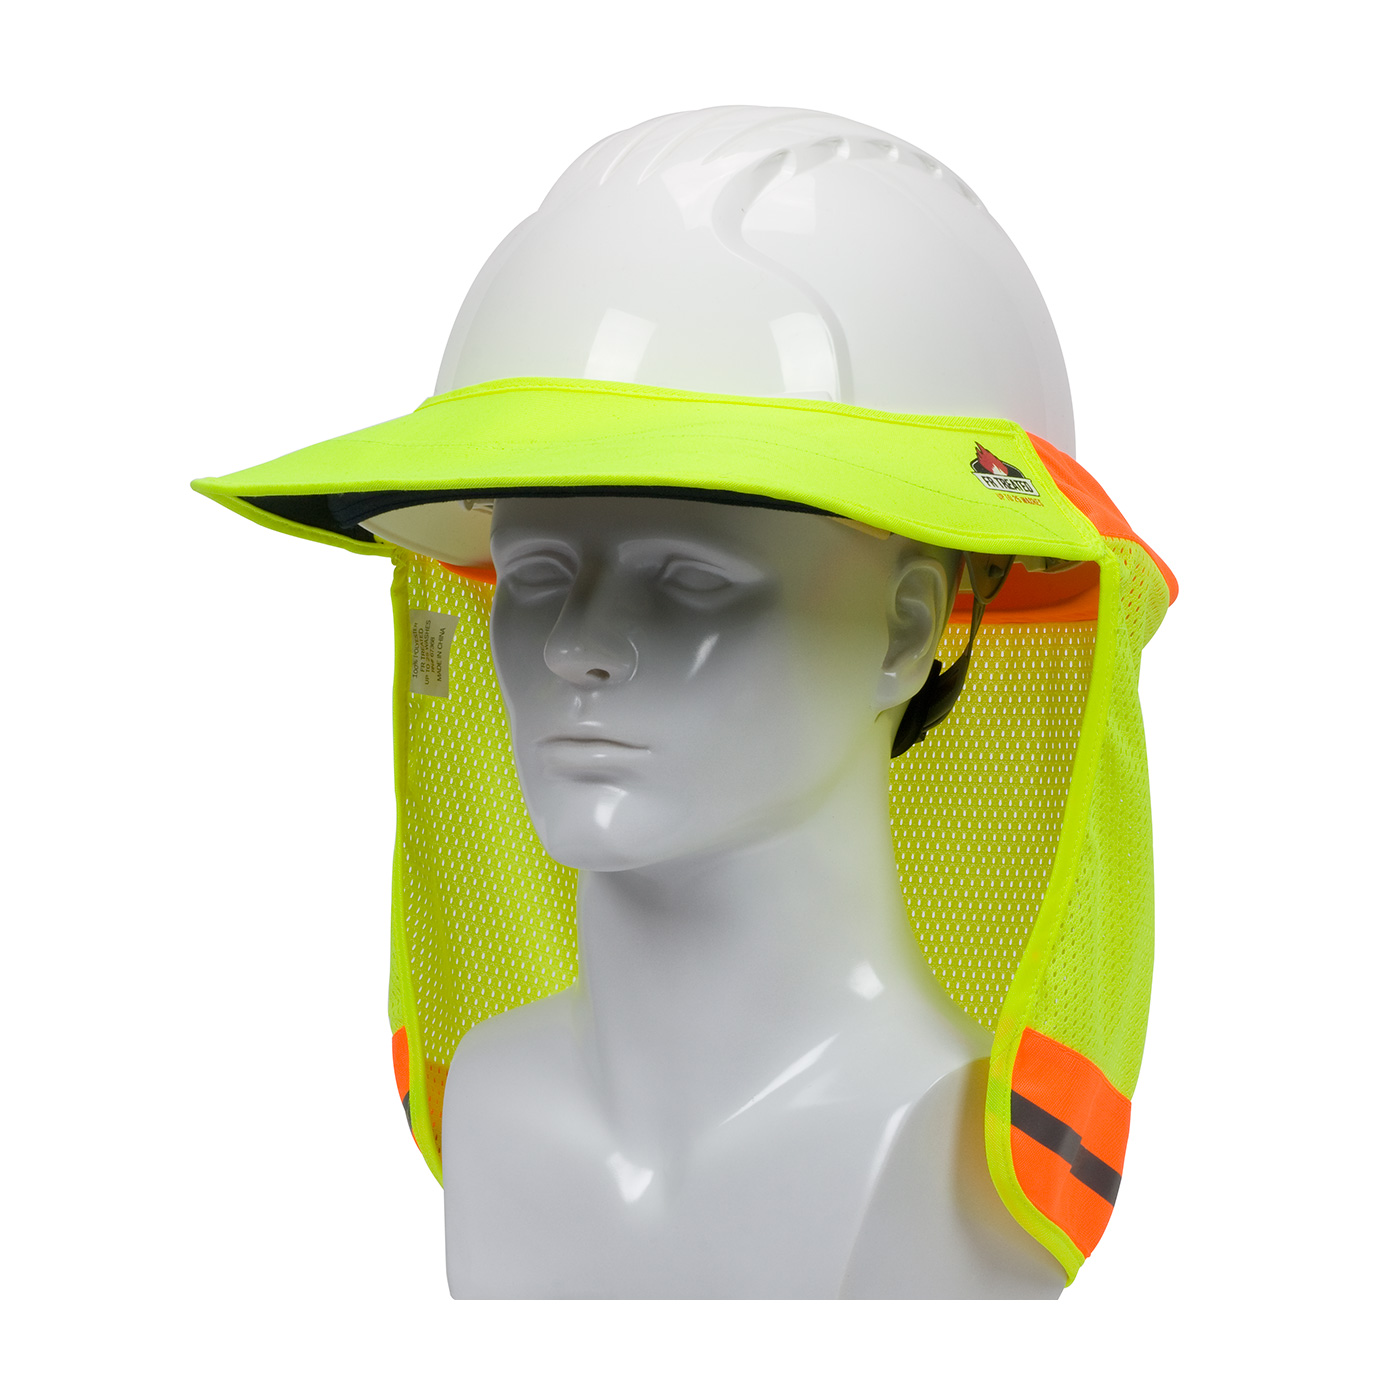 PIP® EZ-Cool® FR Treated Hi-Vis Hard Hat Visor and Neck Shade #396-801FR